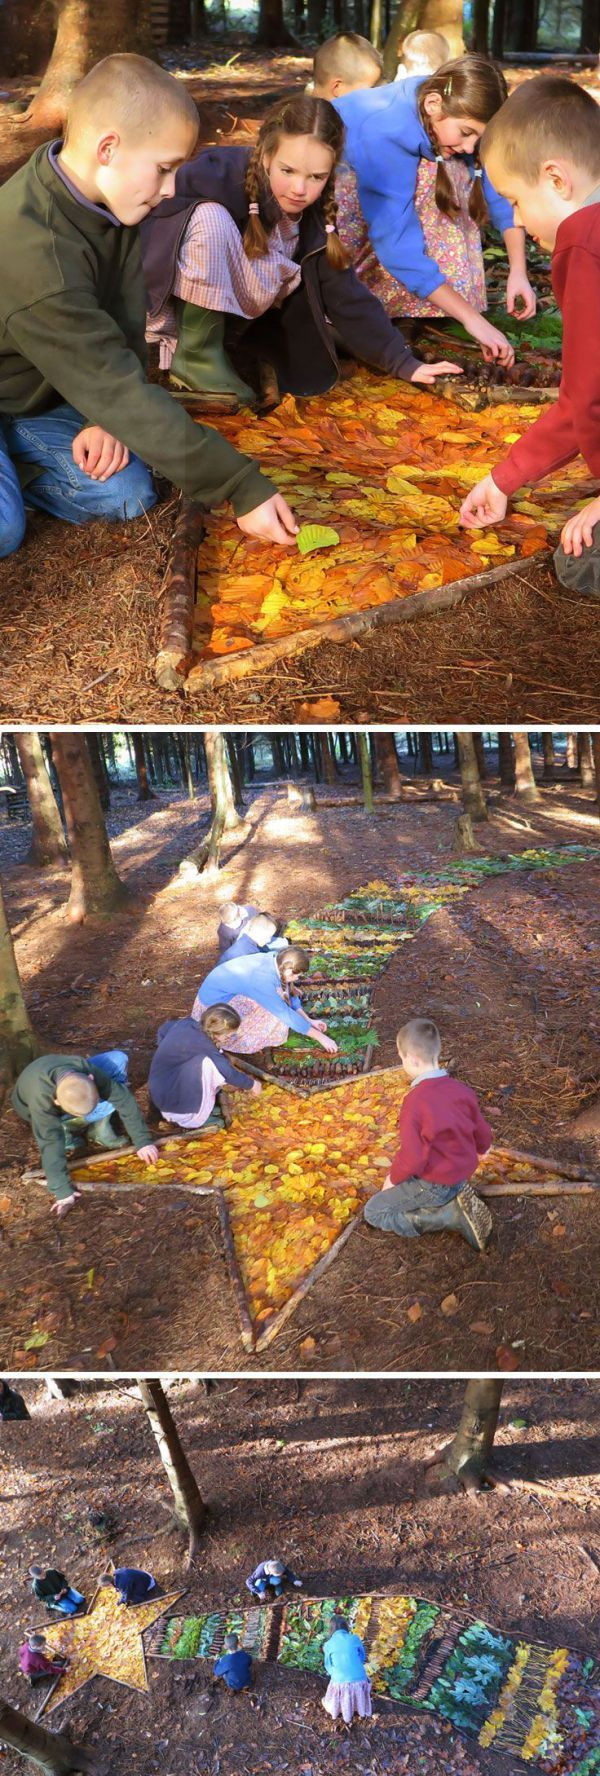 Look what these children made with just sticks and leaves! What a great way to take creativity outdoors.: